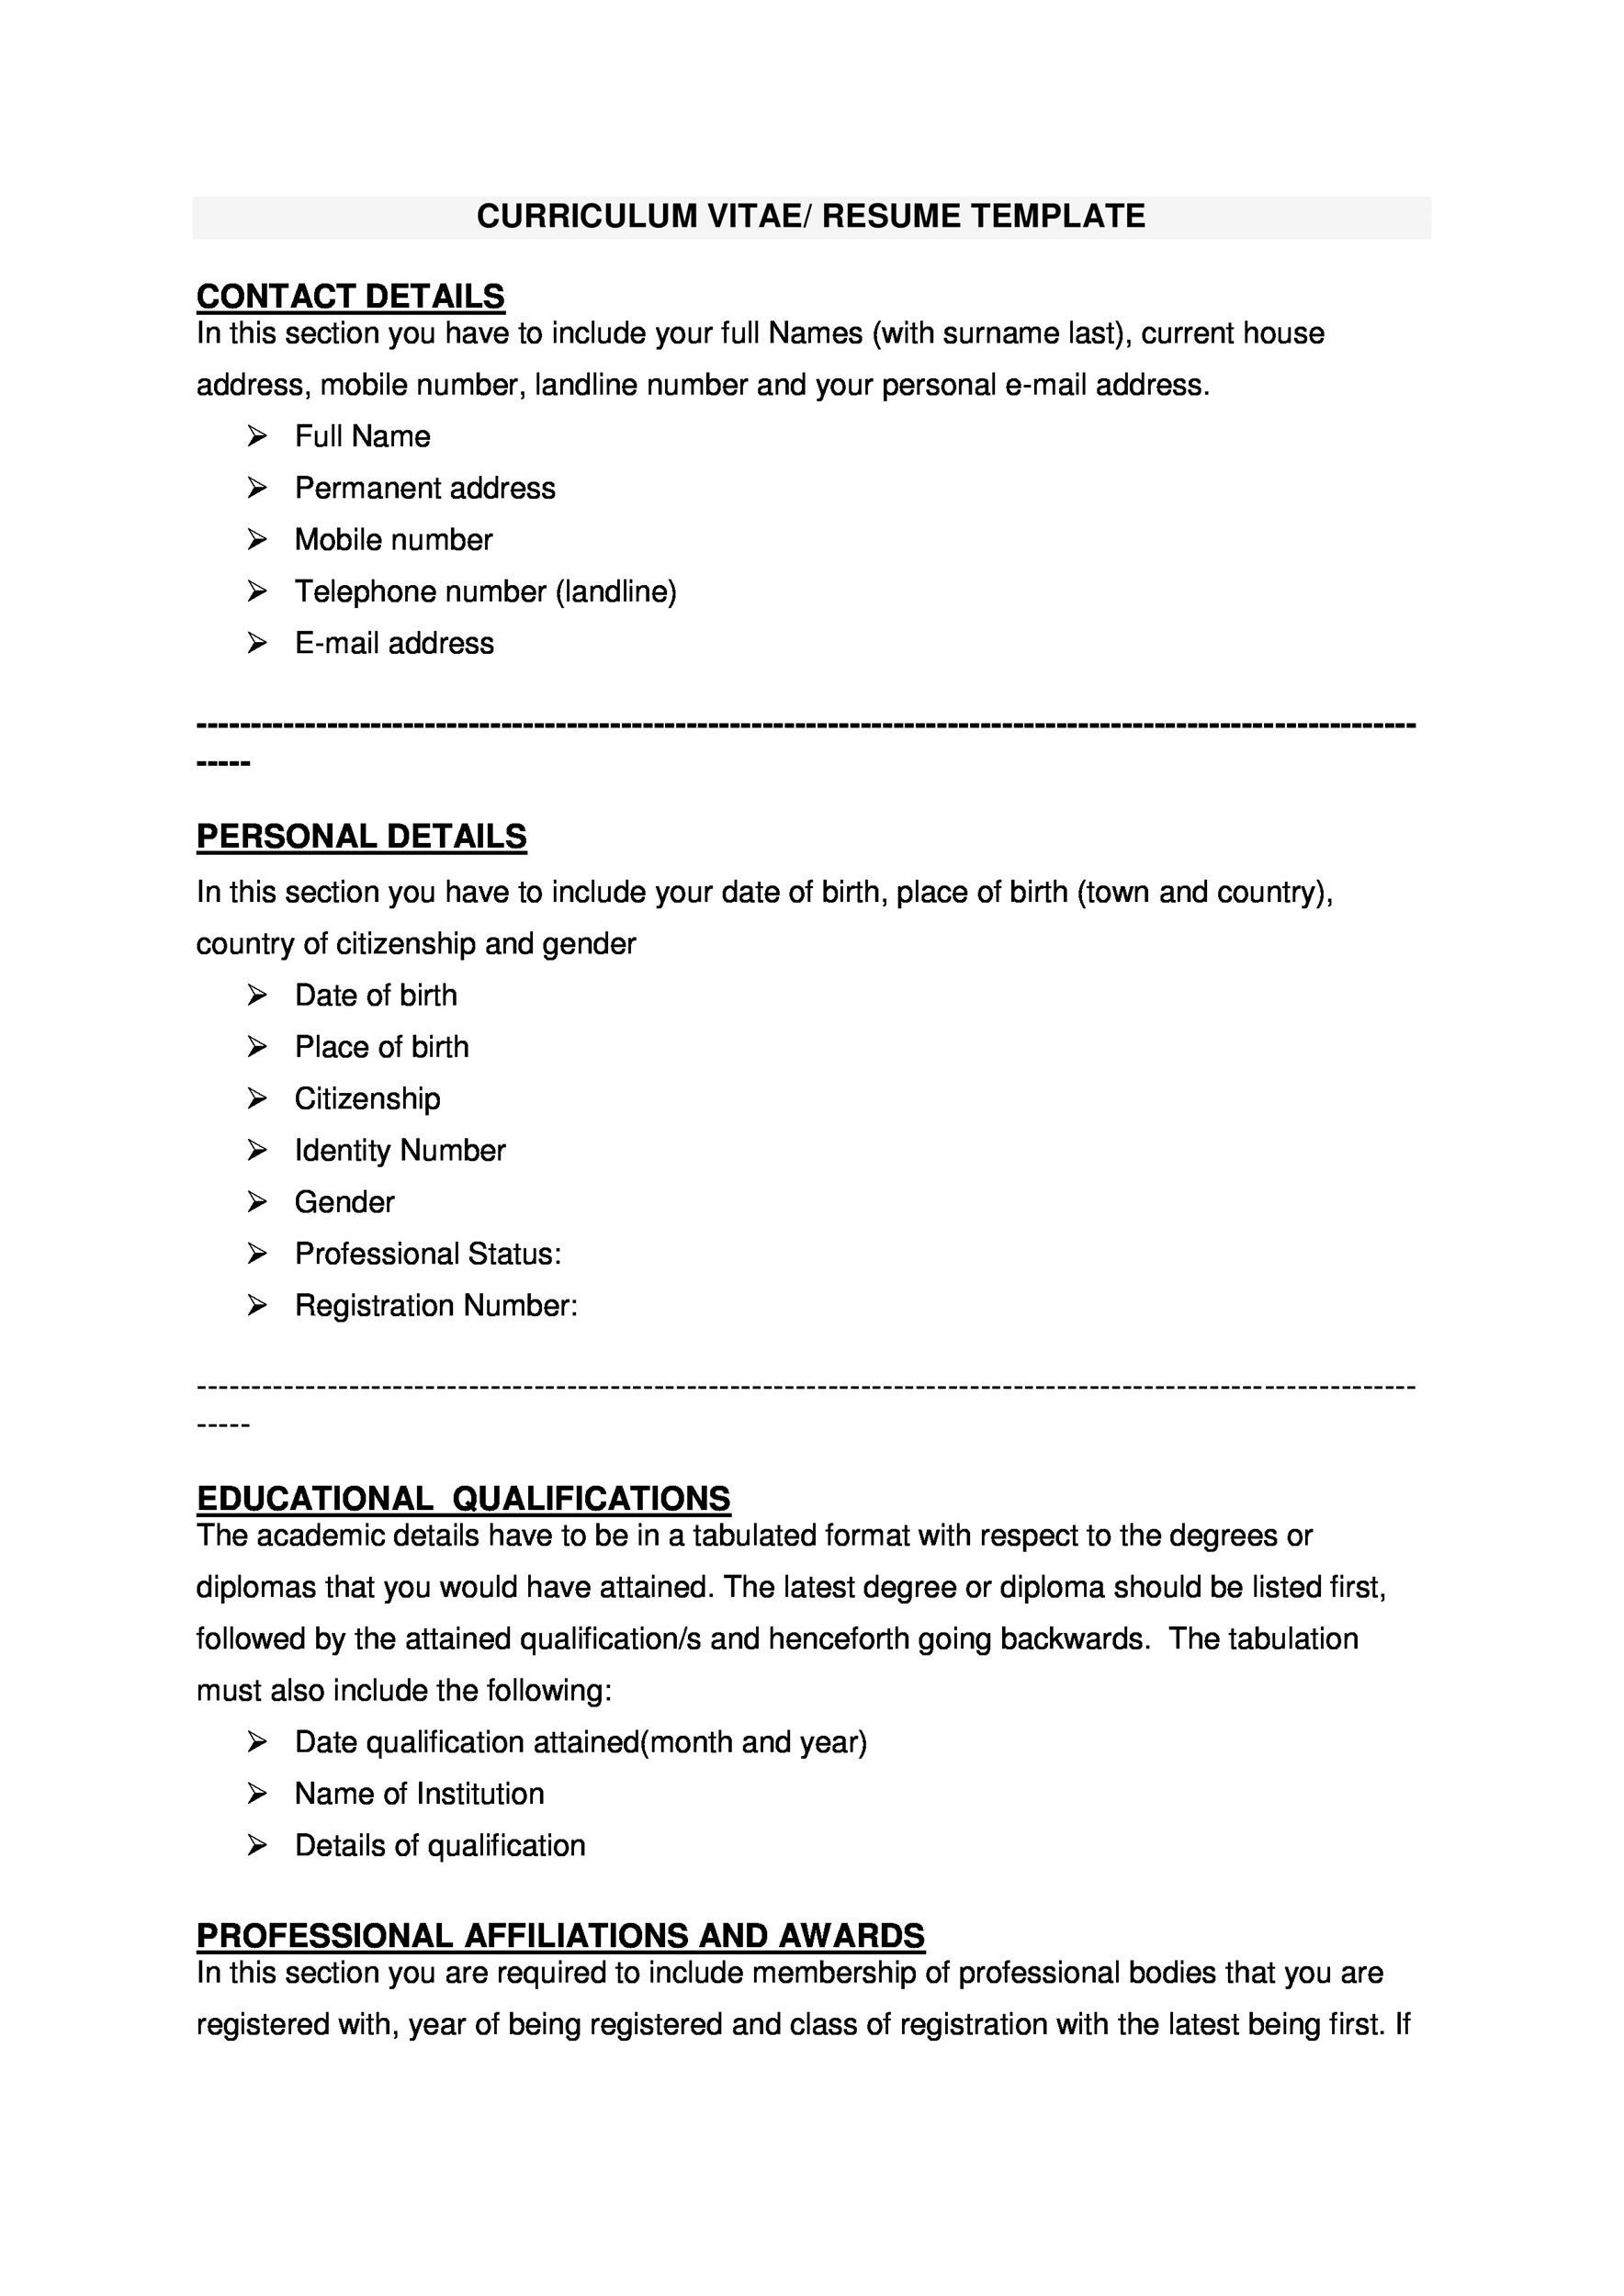 48 Great Curriculum Vitae Templates Examples Template Lab